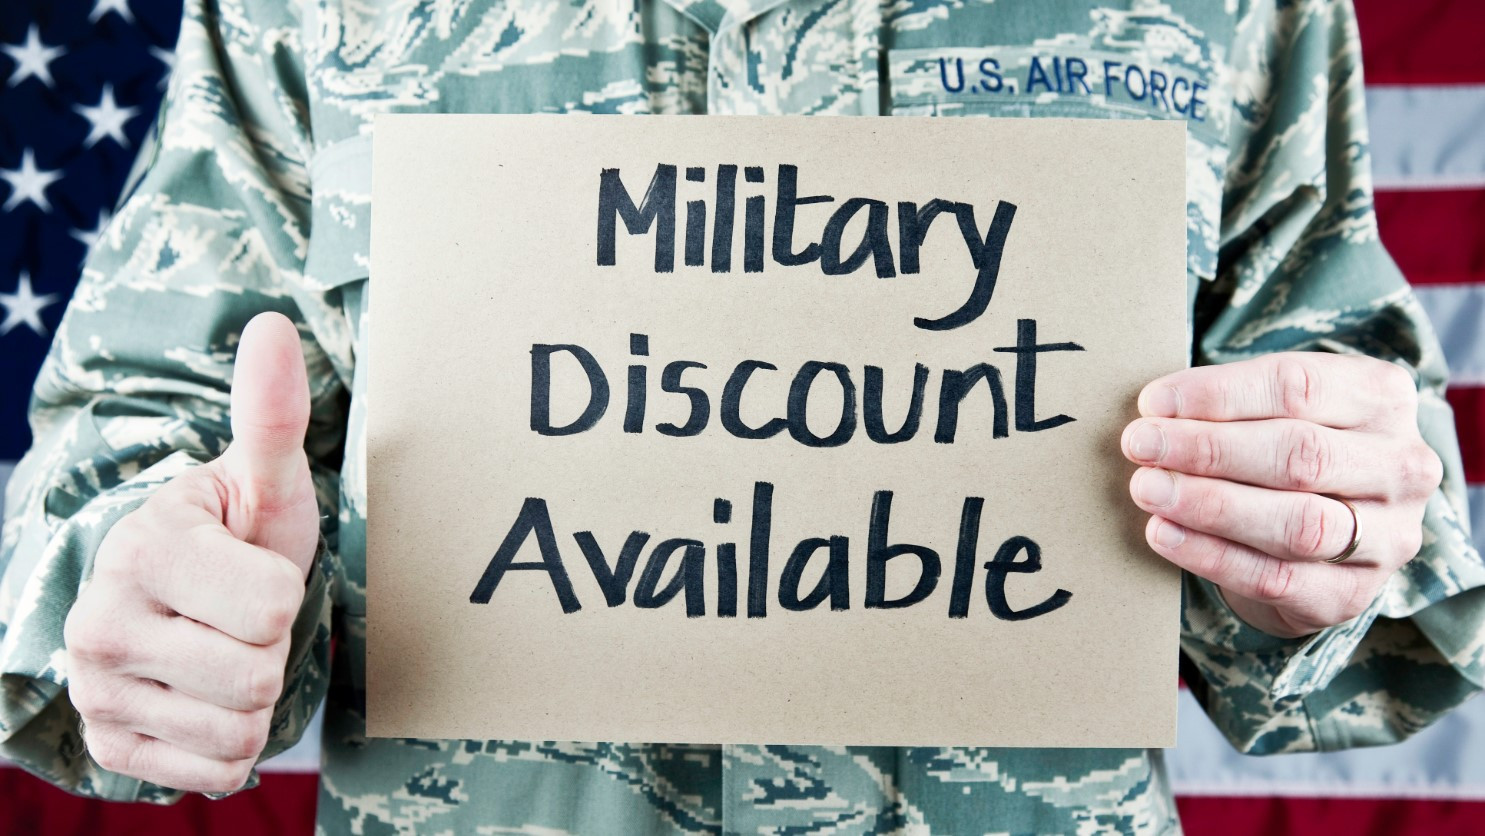 Military discount available